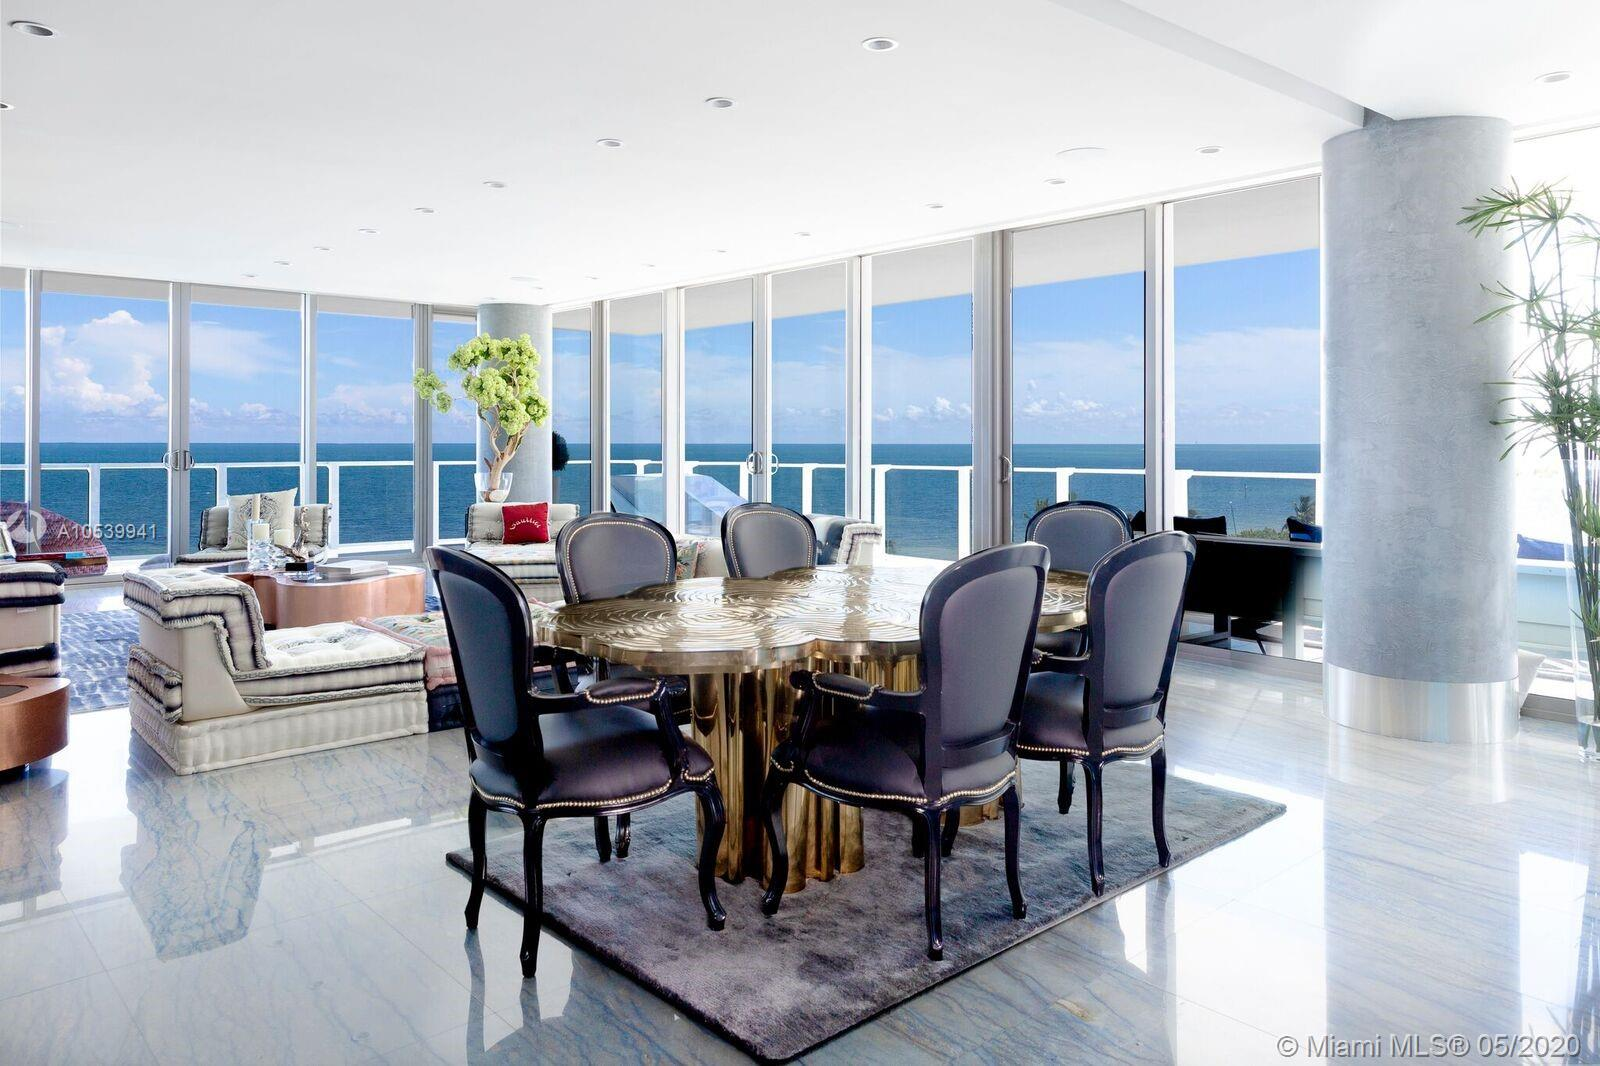 One Of Its Kind Corner Unit With Views Of Ocean, Bay, City Skyline, Sunrise & Sunset. 4, 080Sf Under Ac (4 Units). Flow-Through Corner Unit W/ 2000Sf Wrap-Around Terrace. 4Bed+7.5Bath + Maids Quarters. Master Bath His & Hers Marble Thru-Out With Stainless Steel Bathtub With Views Of The Ocean. All Closets Are Italian Designed.Finished Floors With Top Of The Line Italian Marble. Snaidero Kitch&Baths Cabinets. Finished To Perfection! Exclusive Boutique Resort Lifestyle With Spa Facilities, Fitness Center, Lap Pool, Infinity Pool With Restaurant, Tennis Clay Court, Putting Green, Kids Room, Tv Room And Party Room With Kitchen Facilities. 24Hrs. Concierge, Gated Security, Valet. Definitely The Best Building In Kb. I Could Describe This Corner Unit As Your Glass Mansion On The Ocean In Paradise !